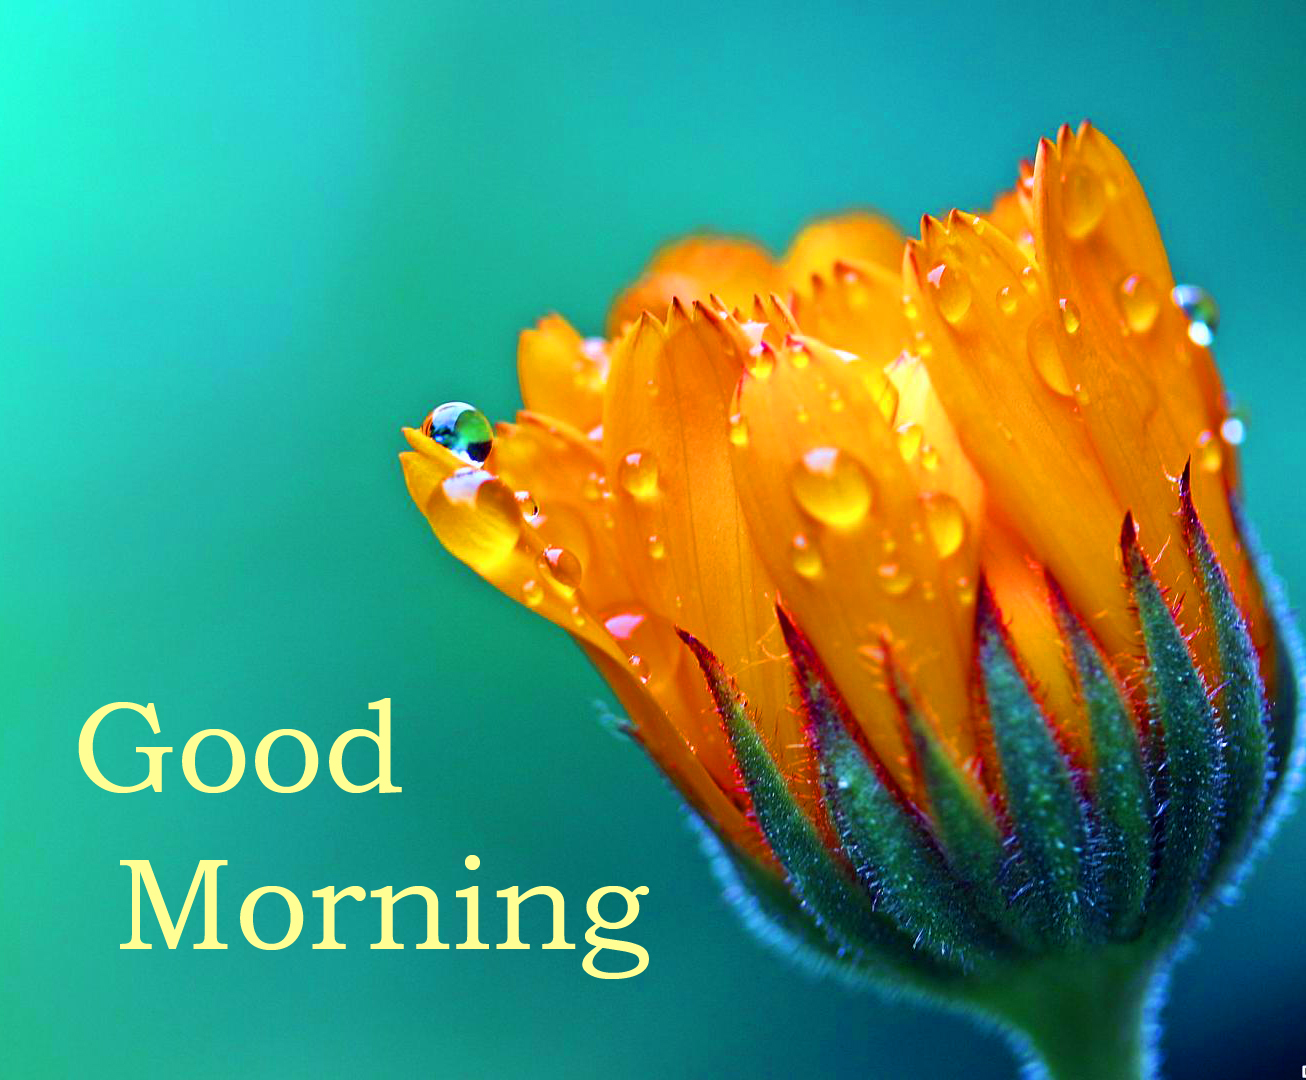 Raindrops on Flower with Good Morning Wish